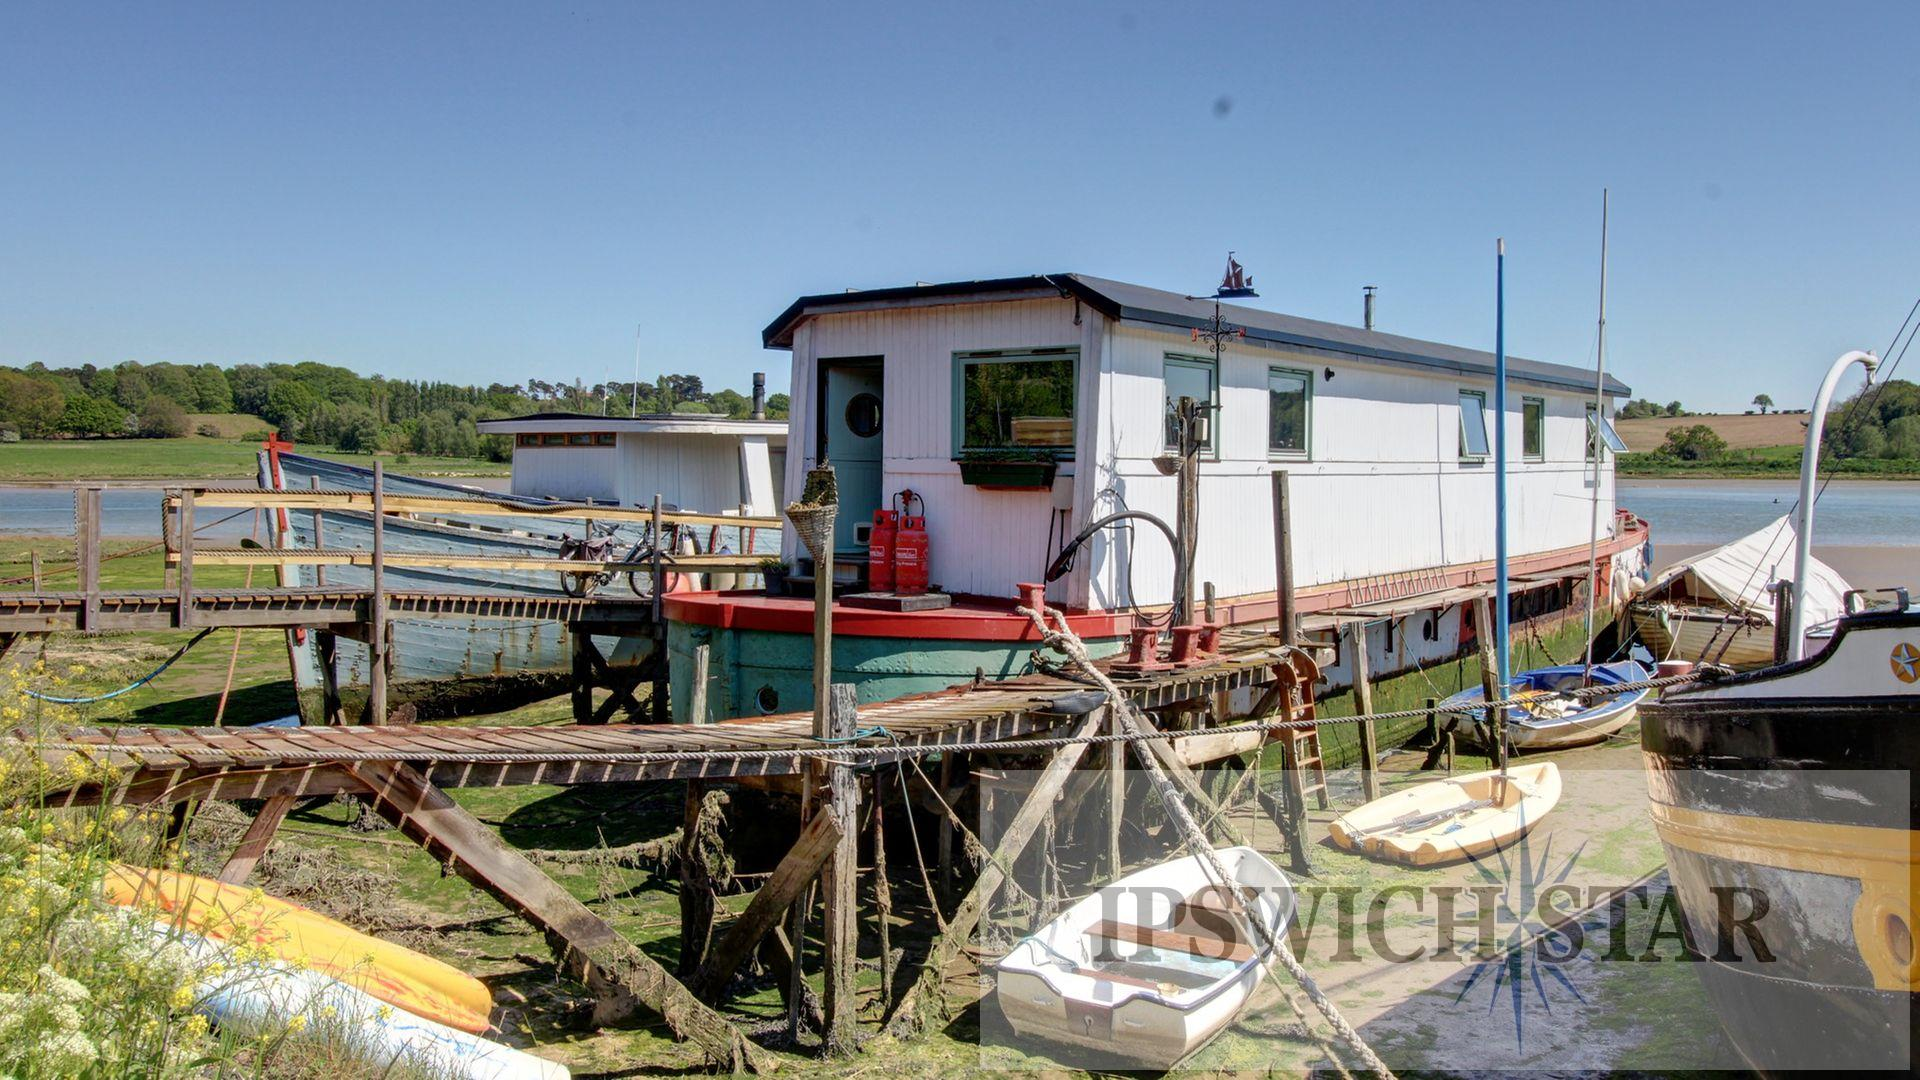 Inside quirky off-grid houseboat with stunning river views - yours for £500k